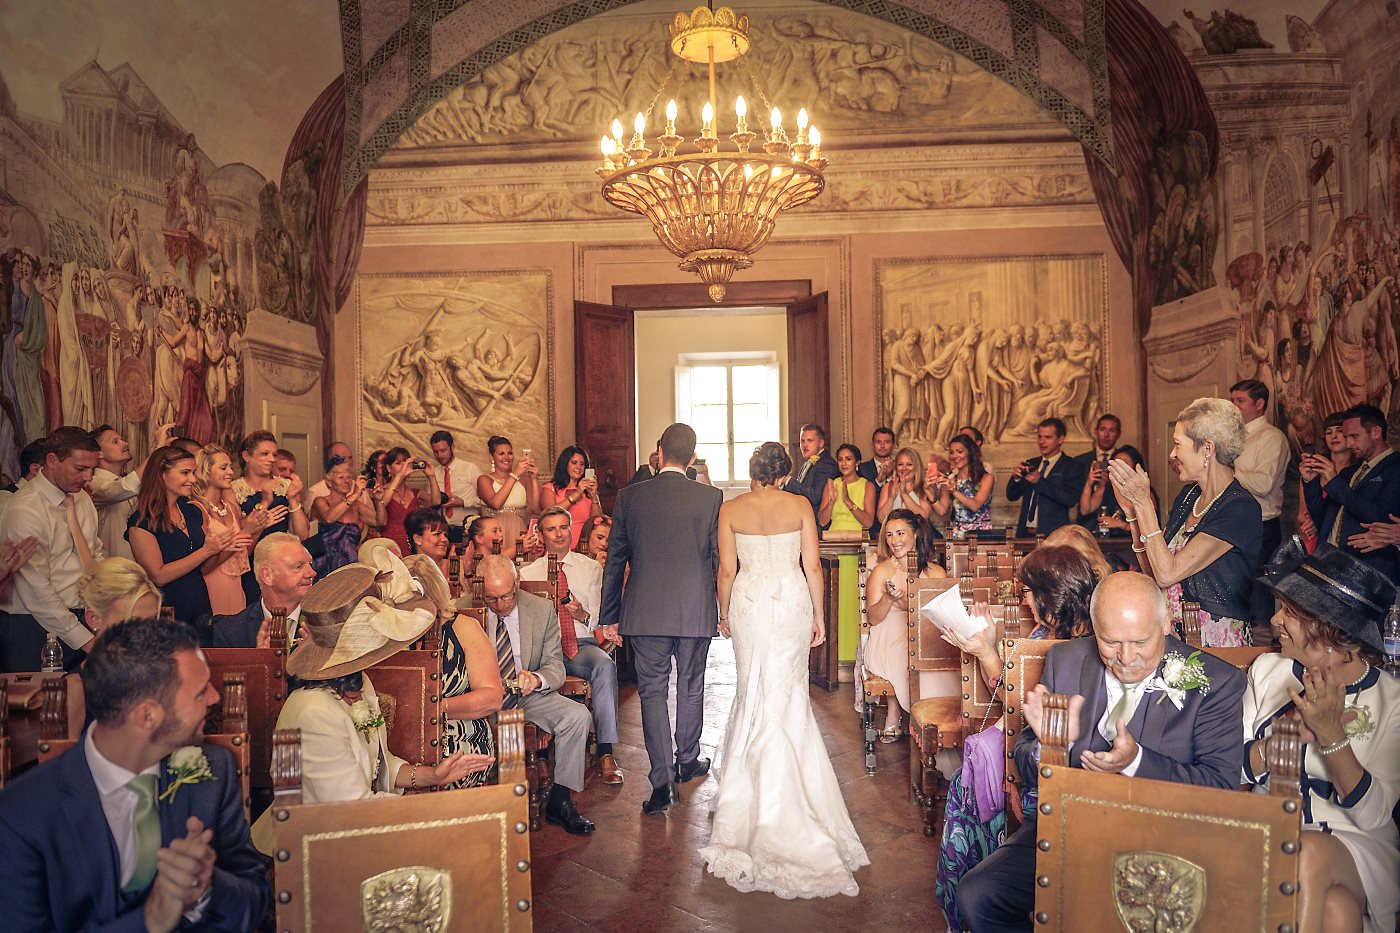 wedding photo castello di modanella_11.jpg